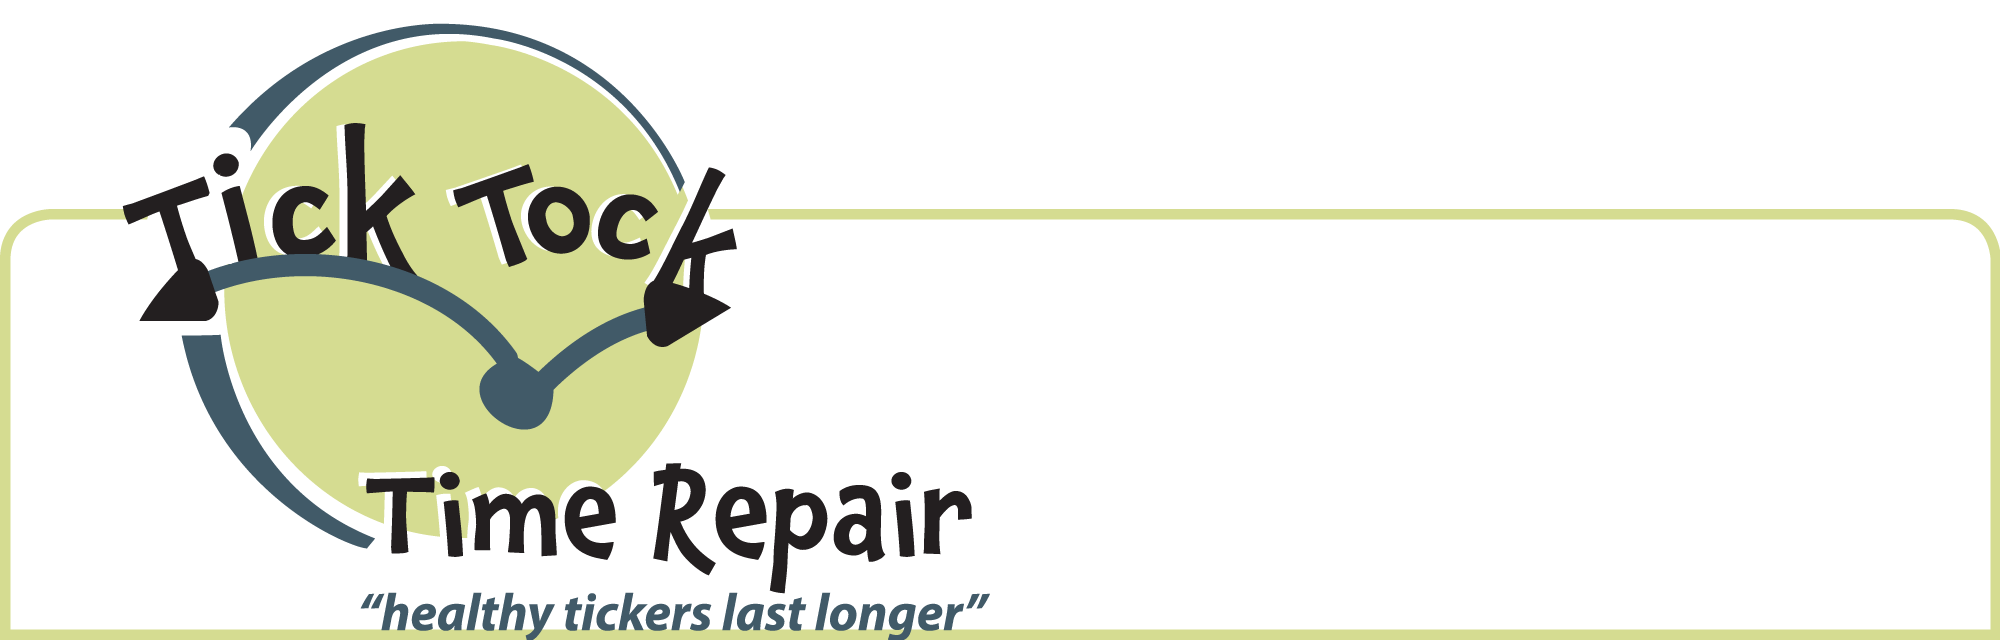 Tick Tock Time Repair